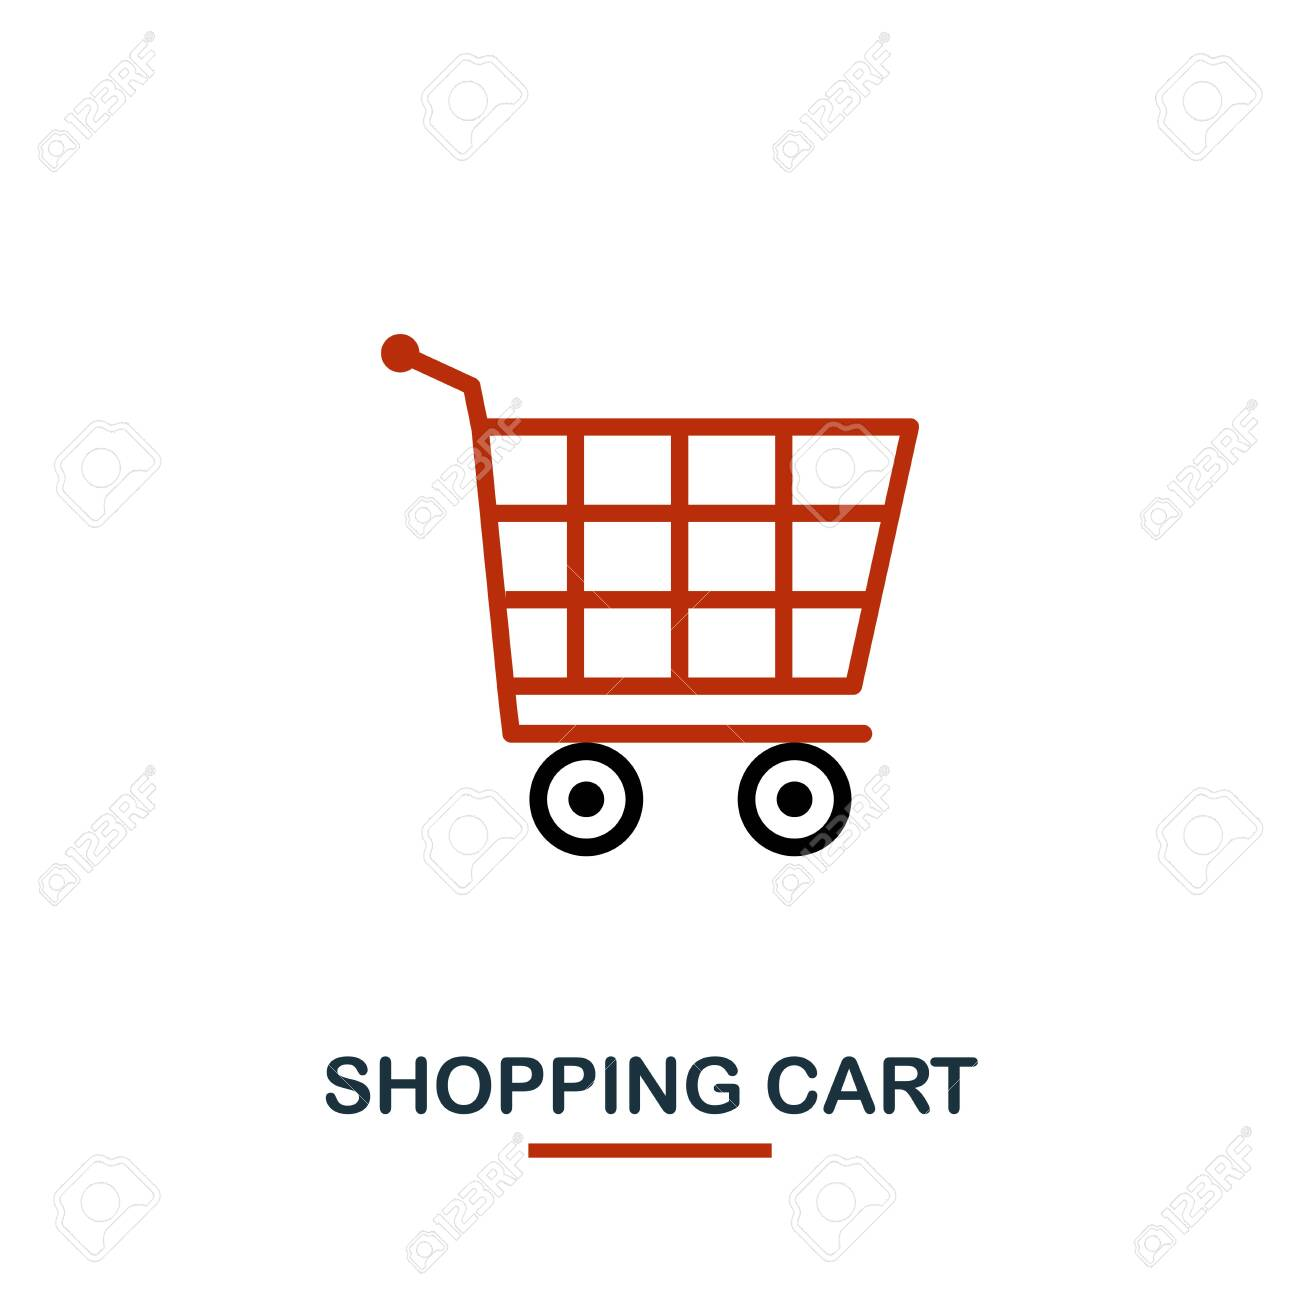 Shopping Cart Icon In Two Colors Creative Black And Red Design Stock Photo Picture And Royalty Free Image Image 122501166